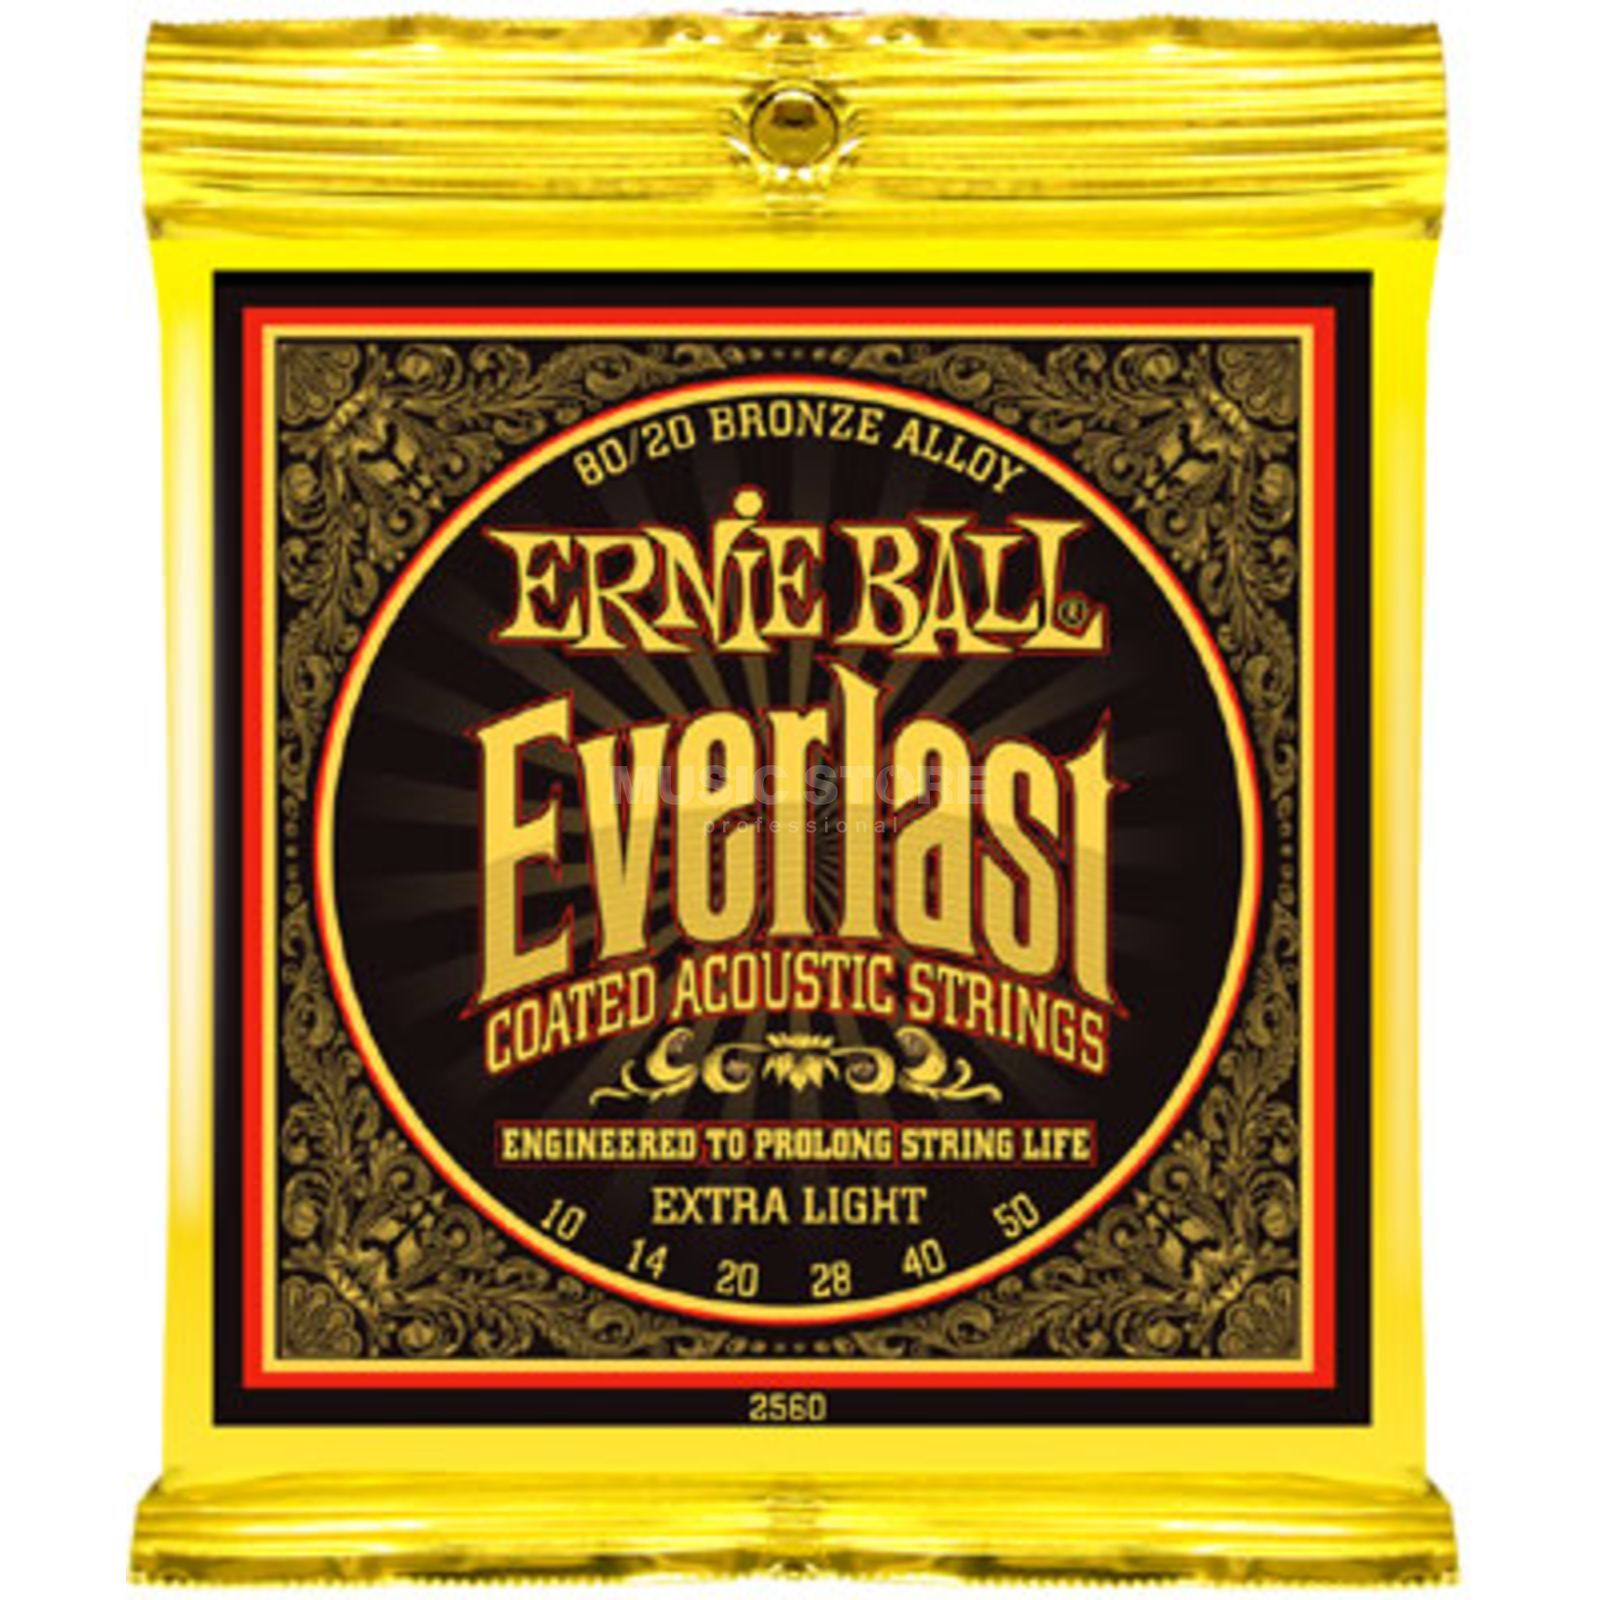 Ernie Ball EB2560 10-50 Everlast Coated 80/20 Bronze Extra Light Produktbild